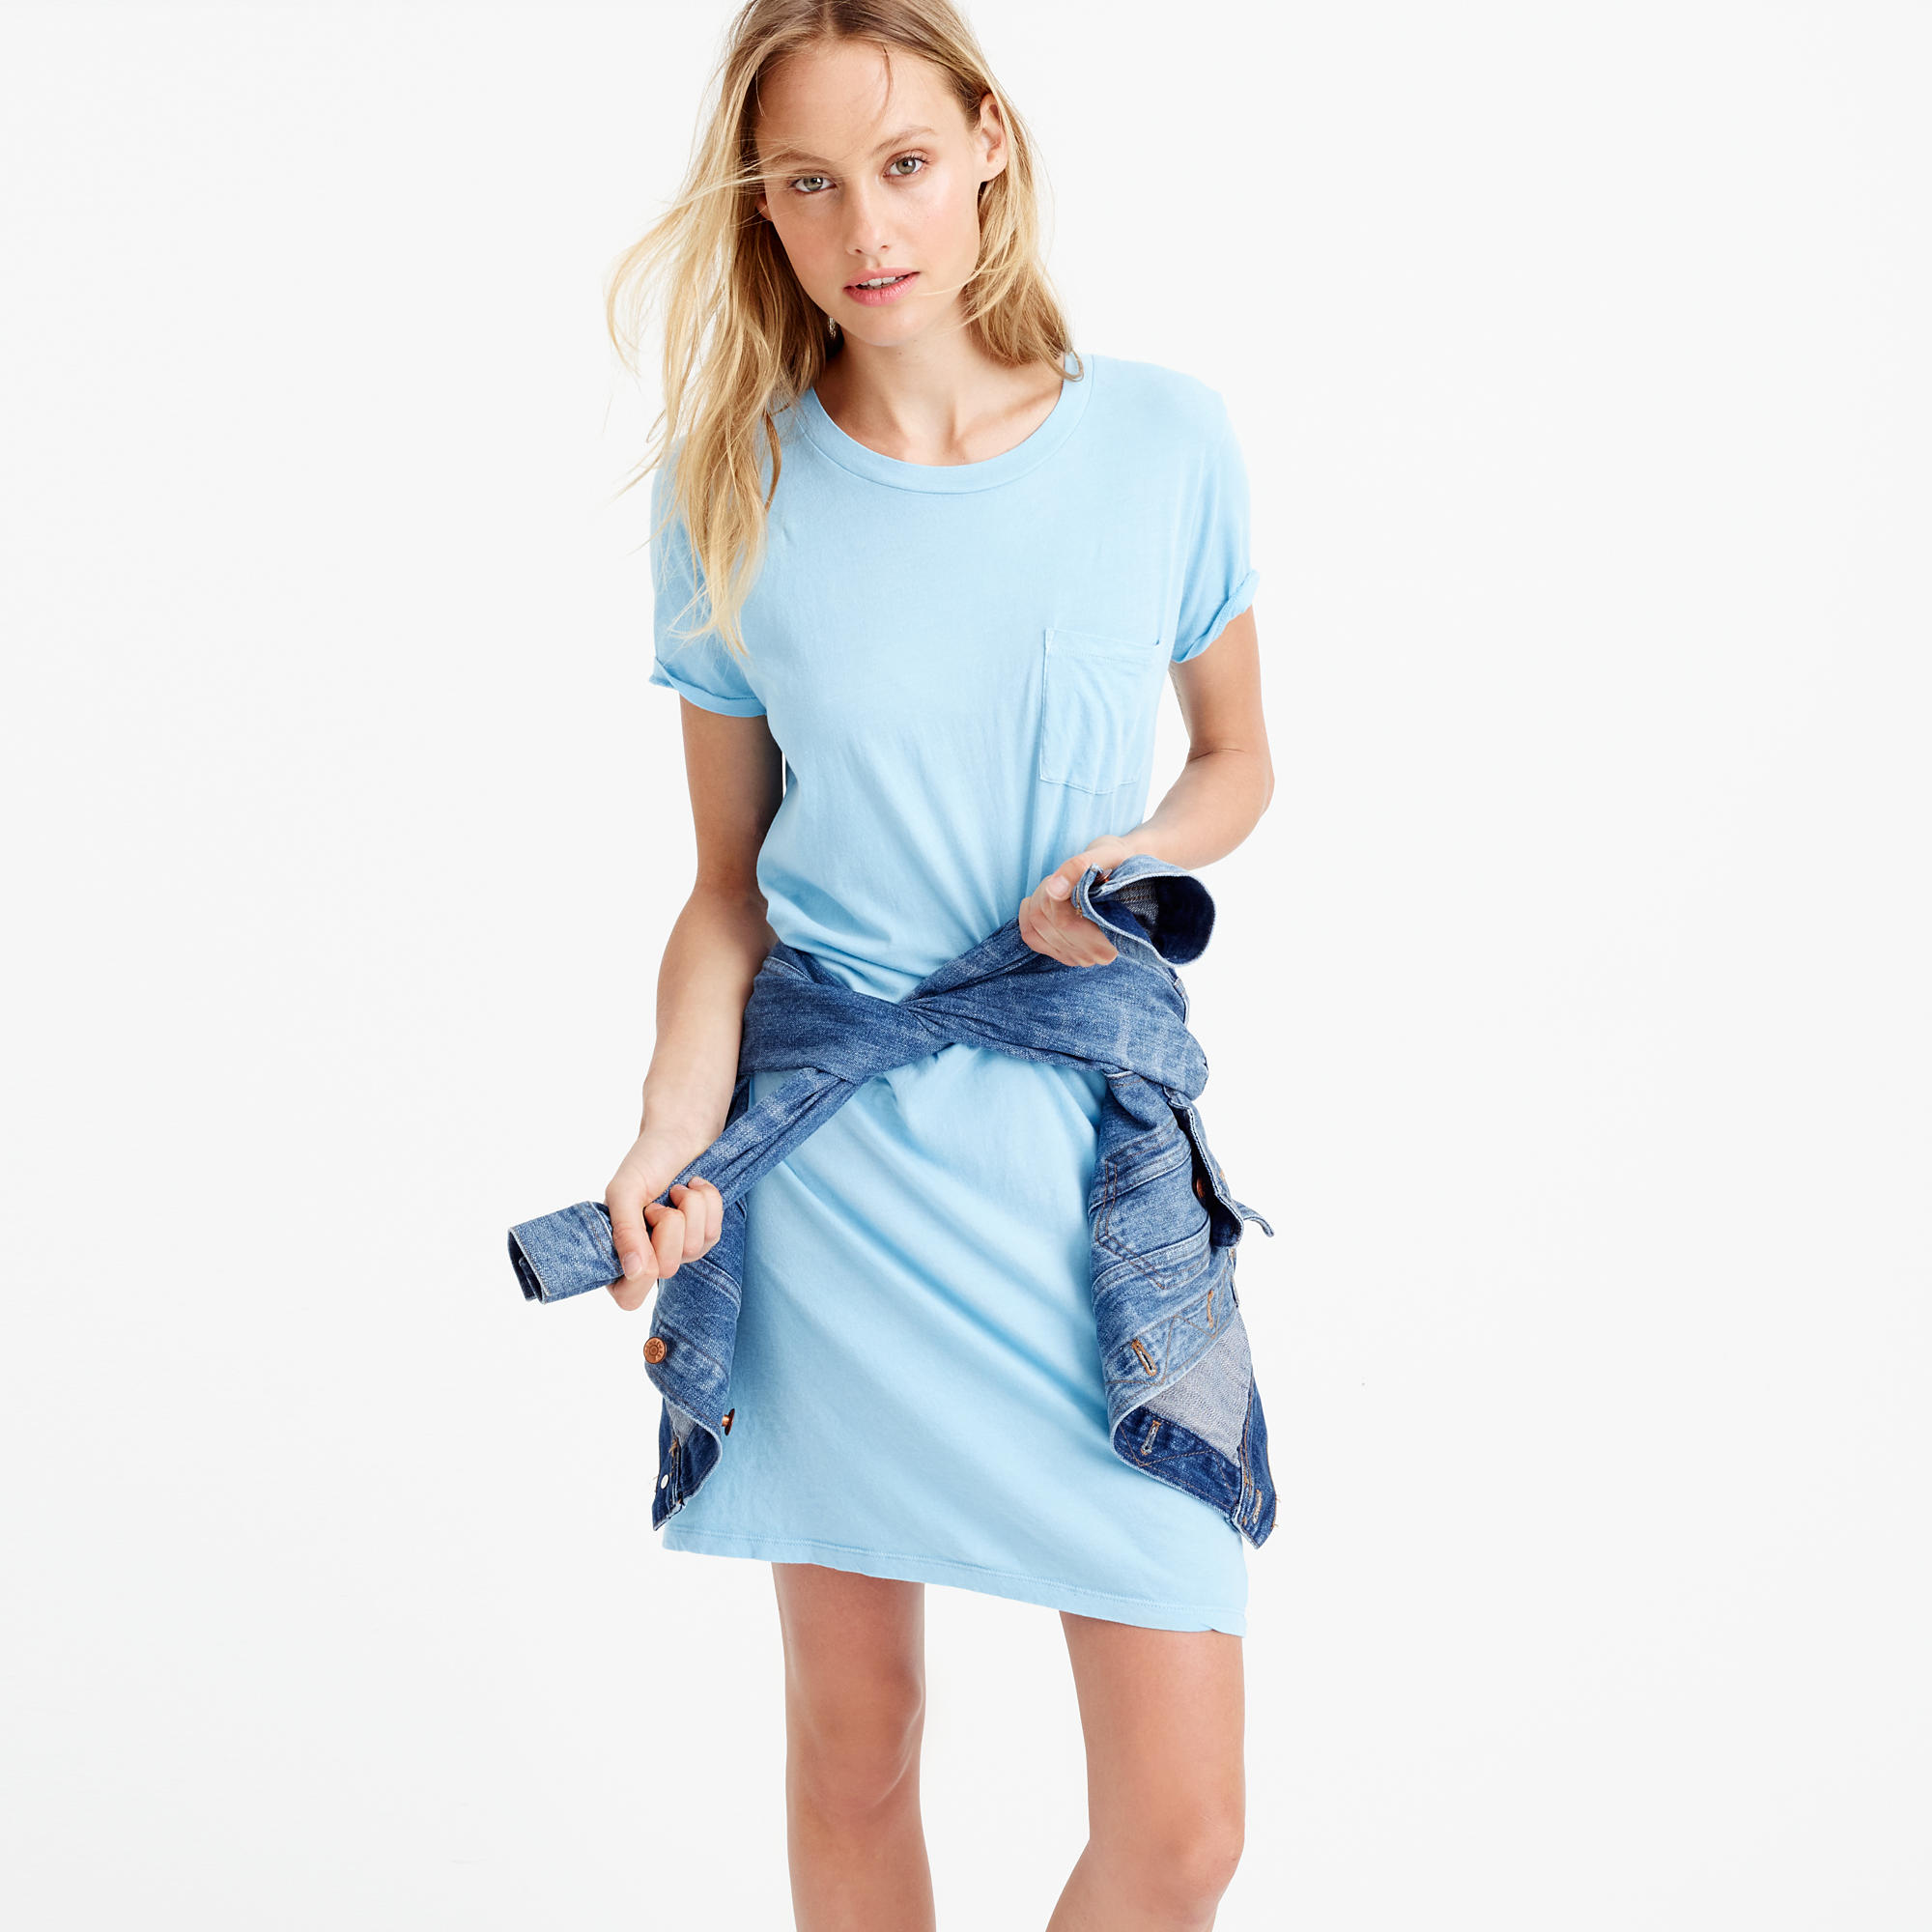 Grament-Dyed t-shirt Dress